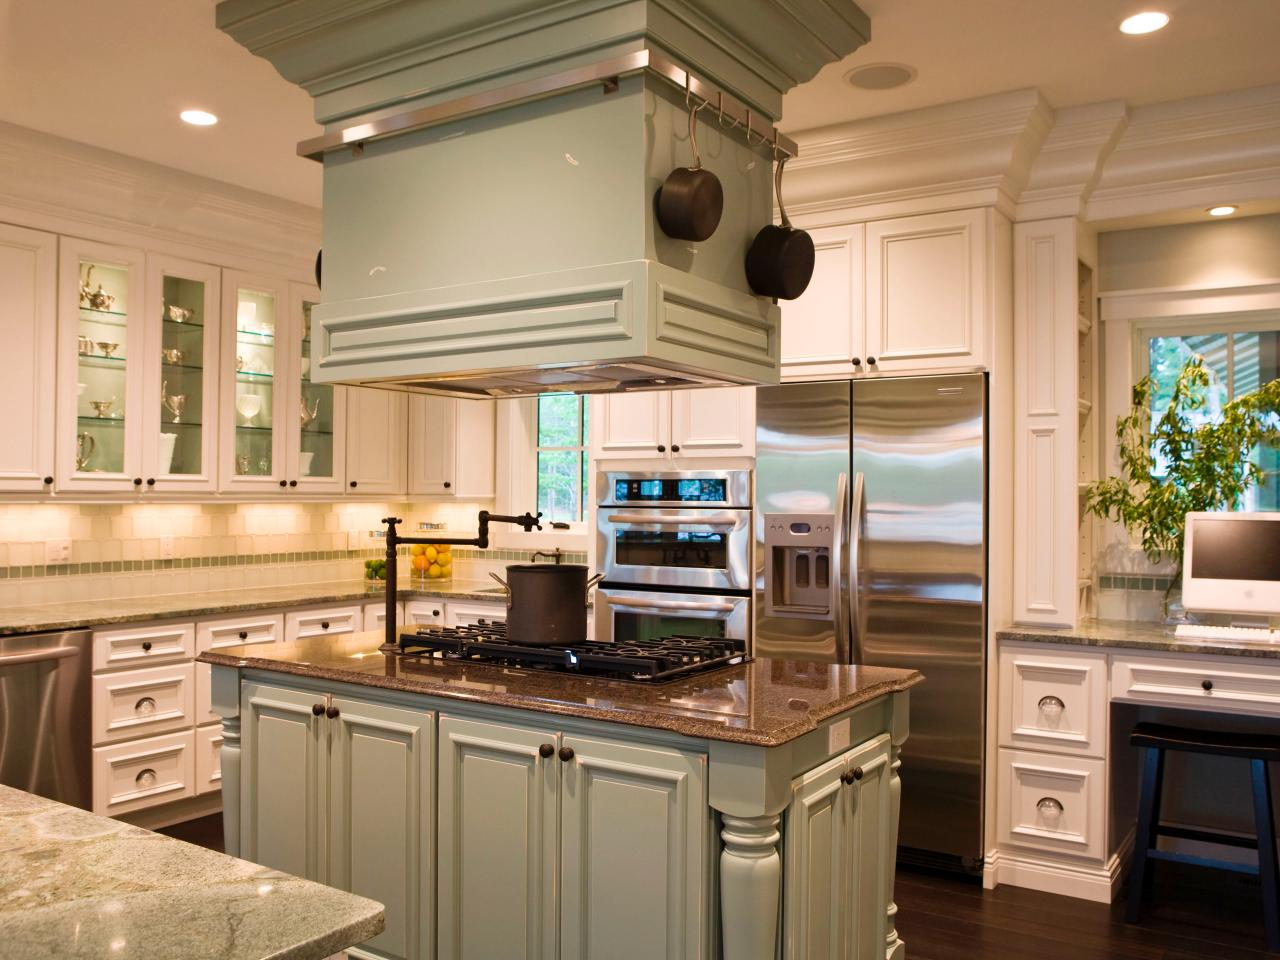 Creating a gourmet kitchen hgtv for My kitchen design style